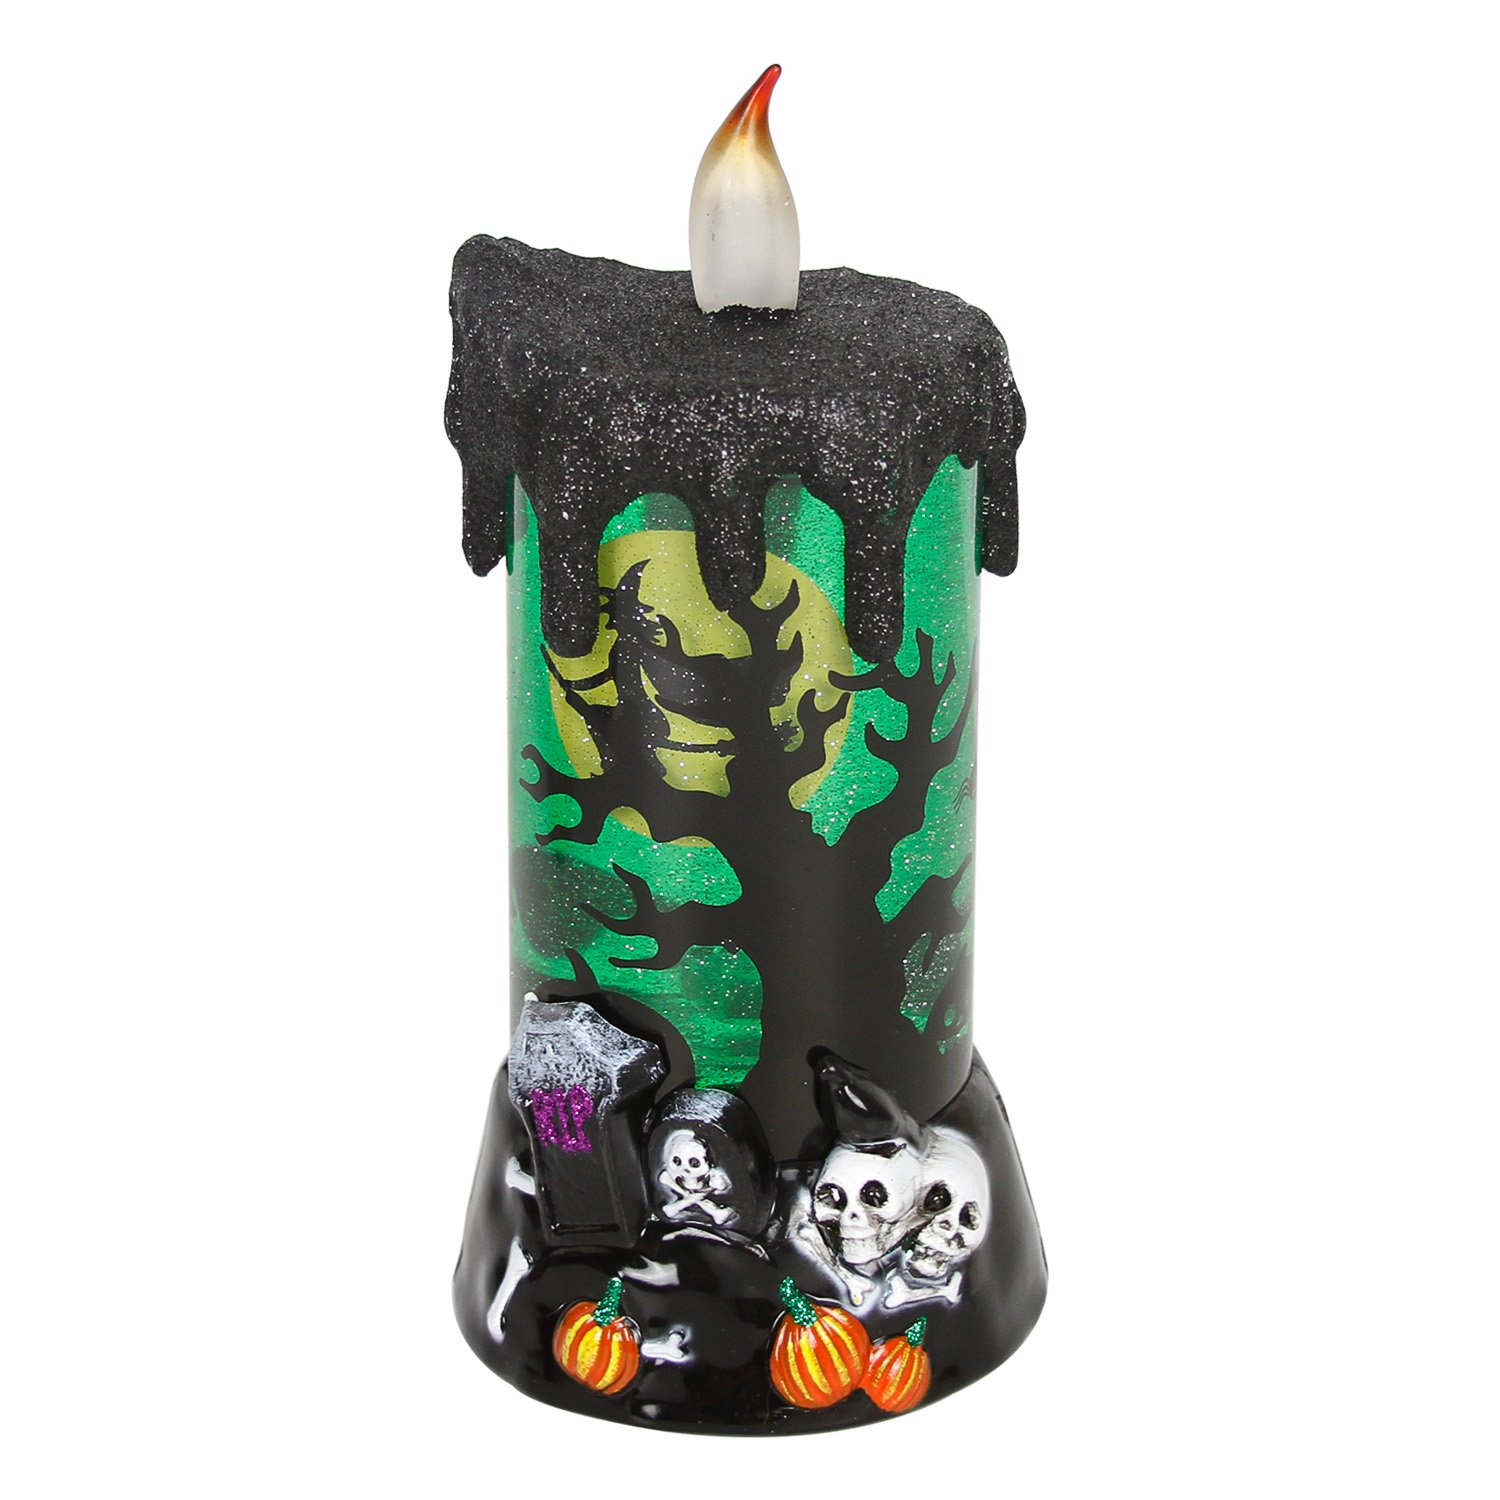 Evelyne Melting Glowing Snow Globe Candle with Flameless LEDハロウィンパーティーお祝いのデコレーションライト グリーン GMT-10318-A B07545B5LY Witch